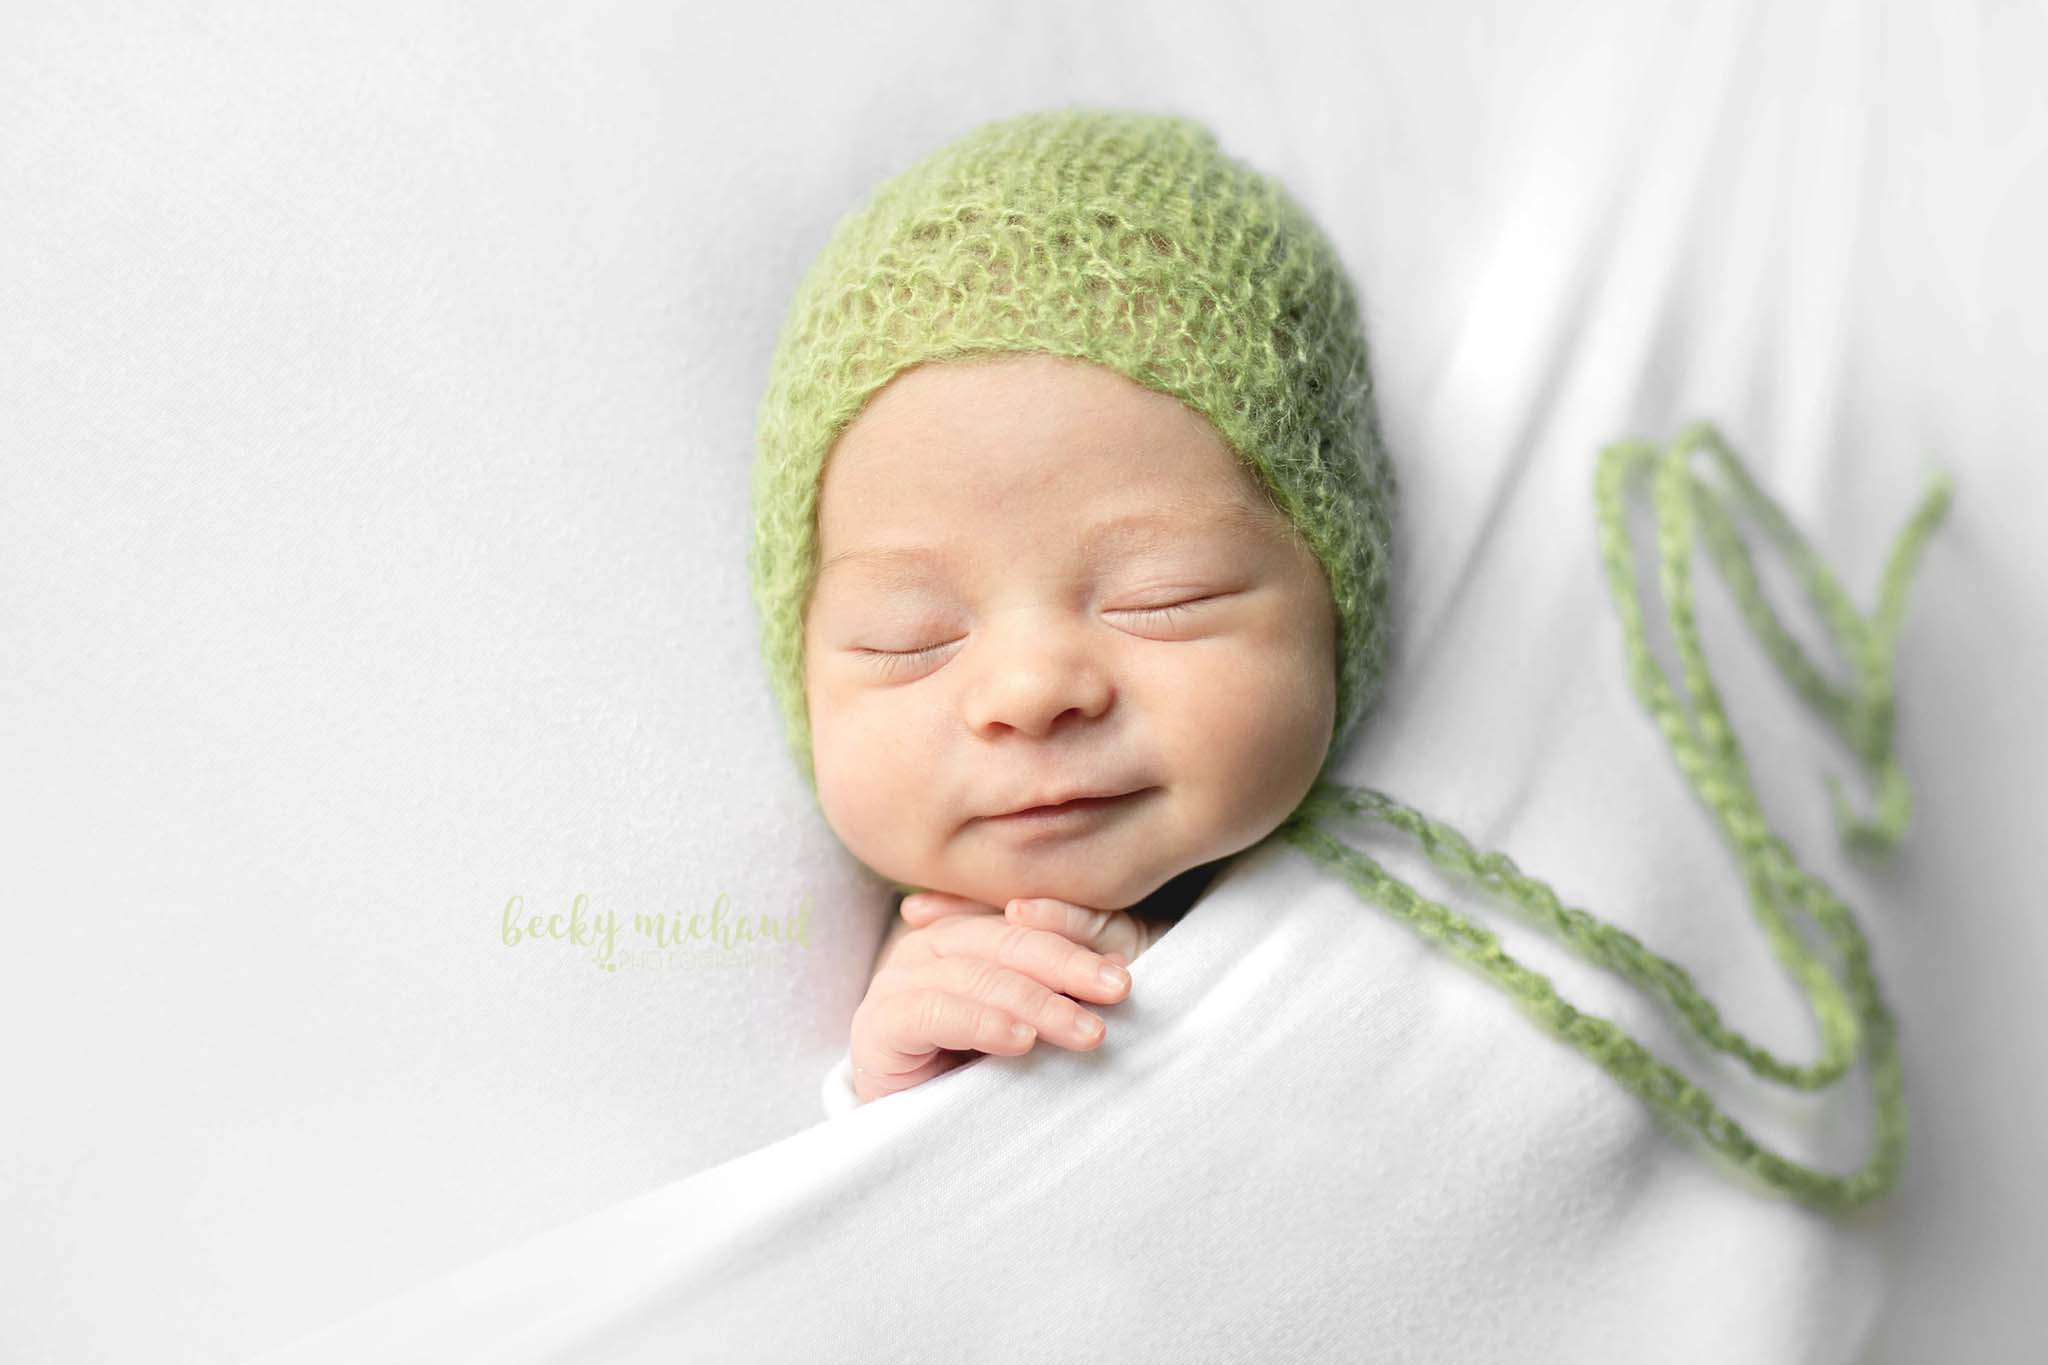 Baby girl wearing a green bonnet in a simple newborn portrait